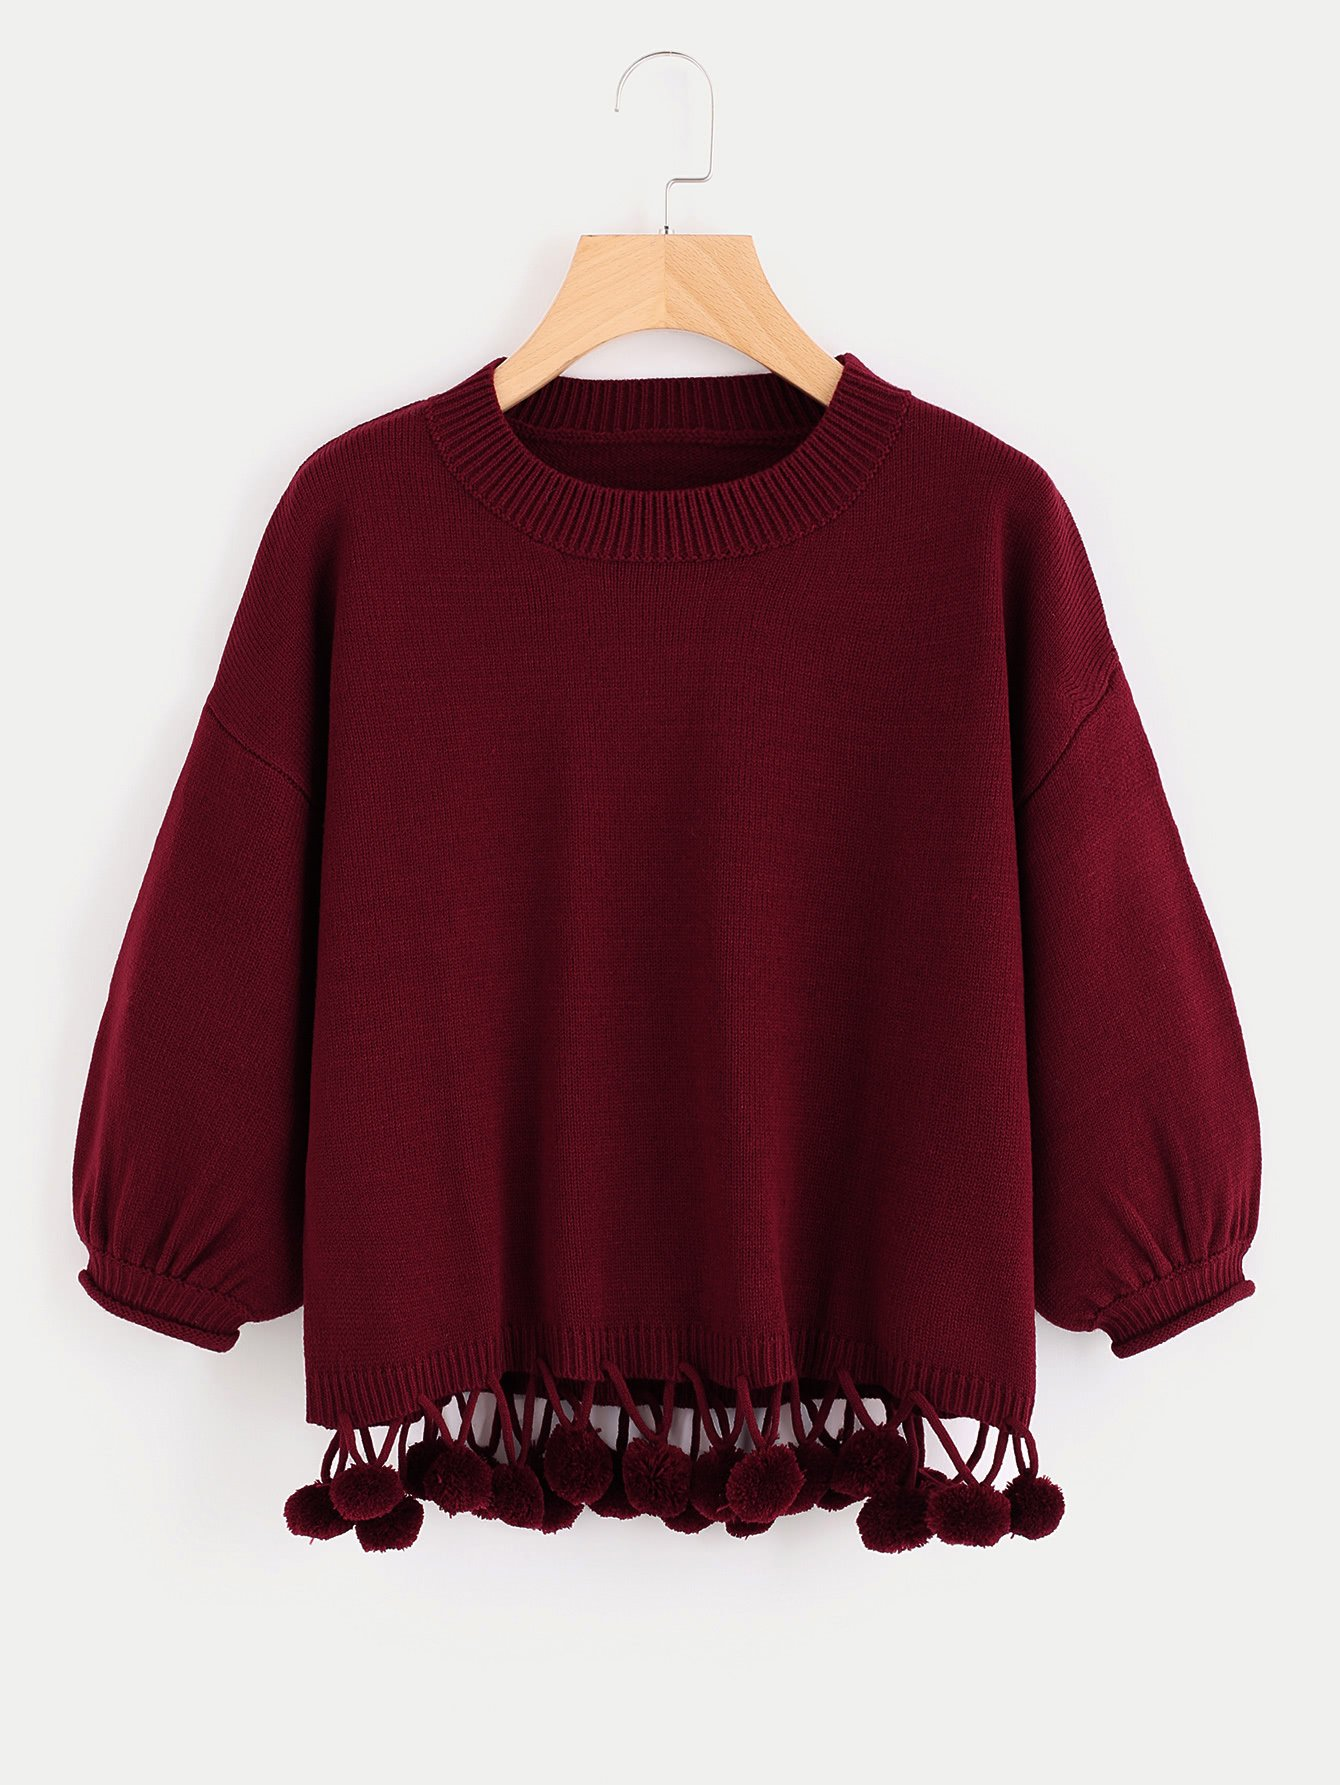 e2694996d1ad Material  100% Acrylic Color  Burgundy Pattern Type  Plain Neckline  Round  Neck Style  Casual